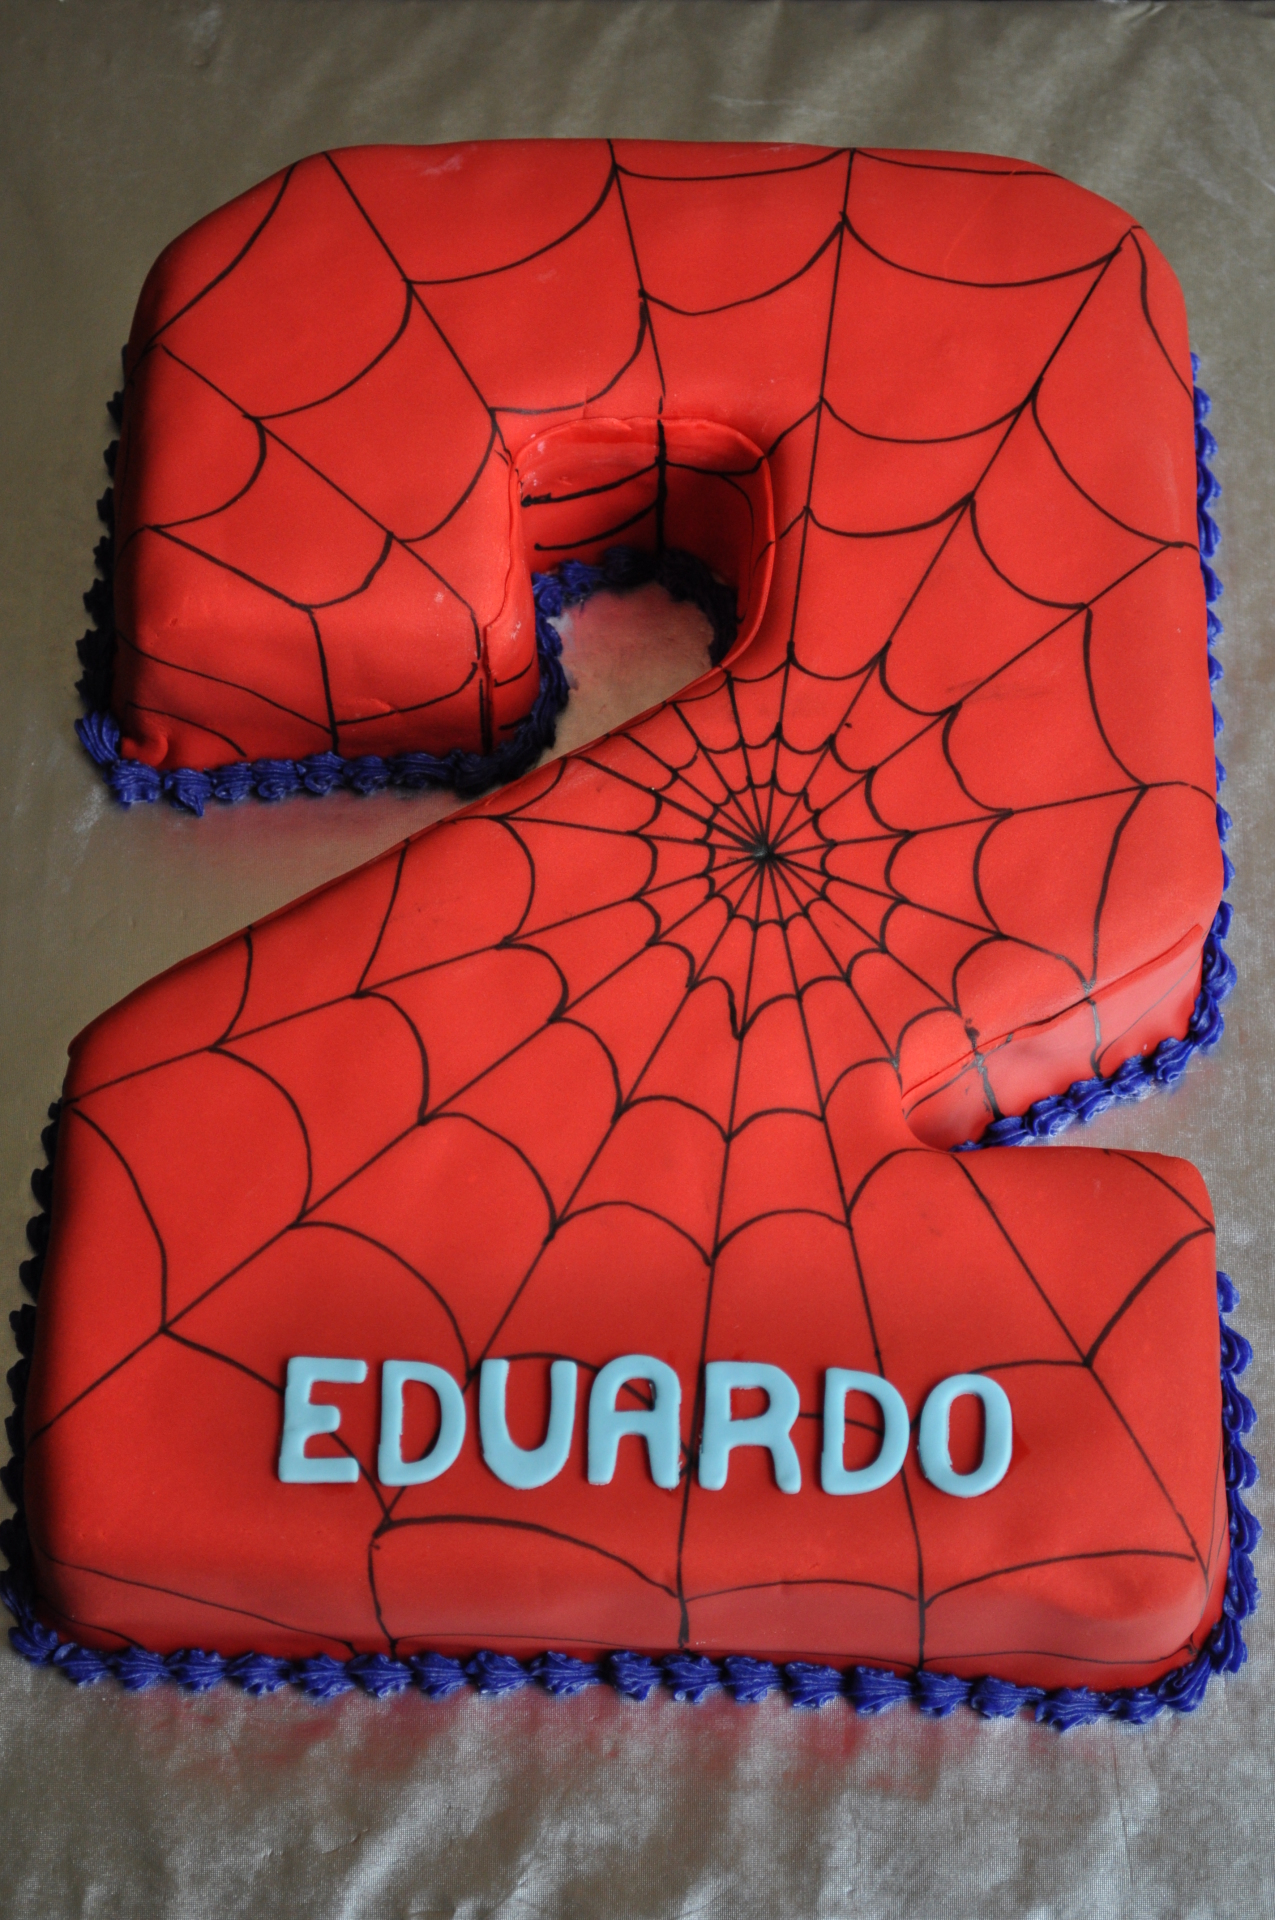 Spiderman cake, number 2 cake